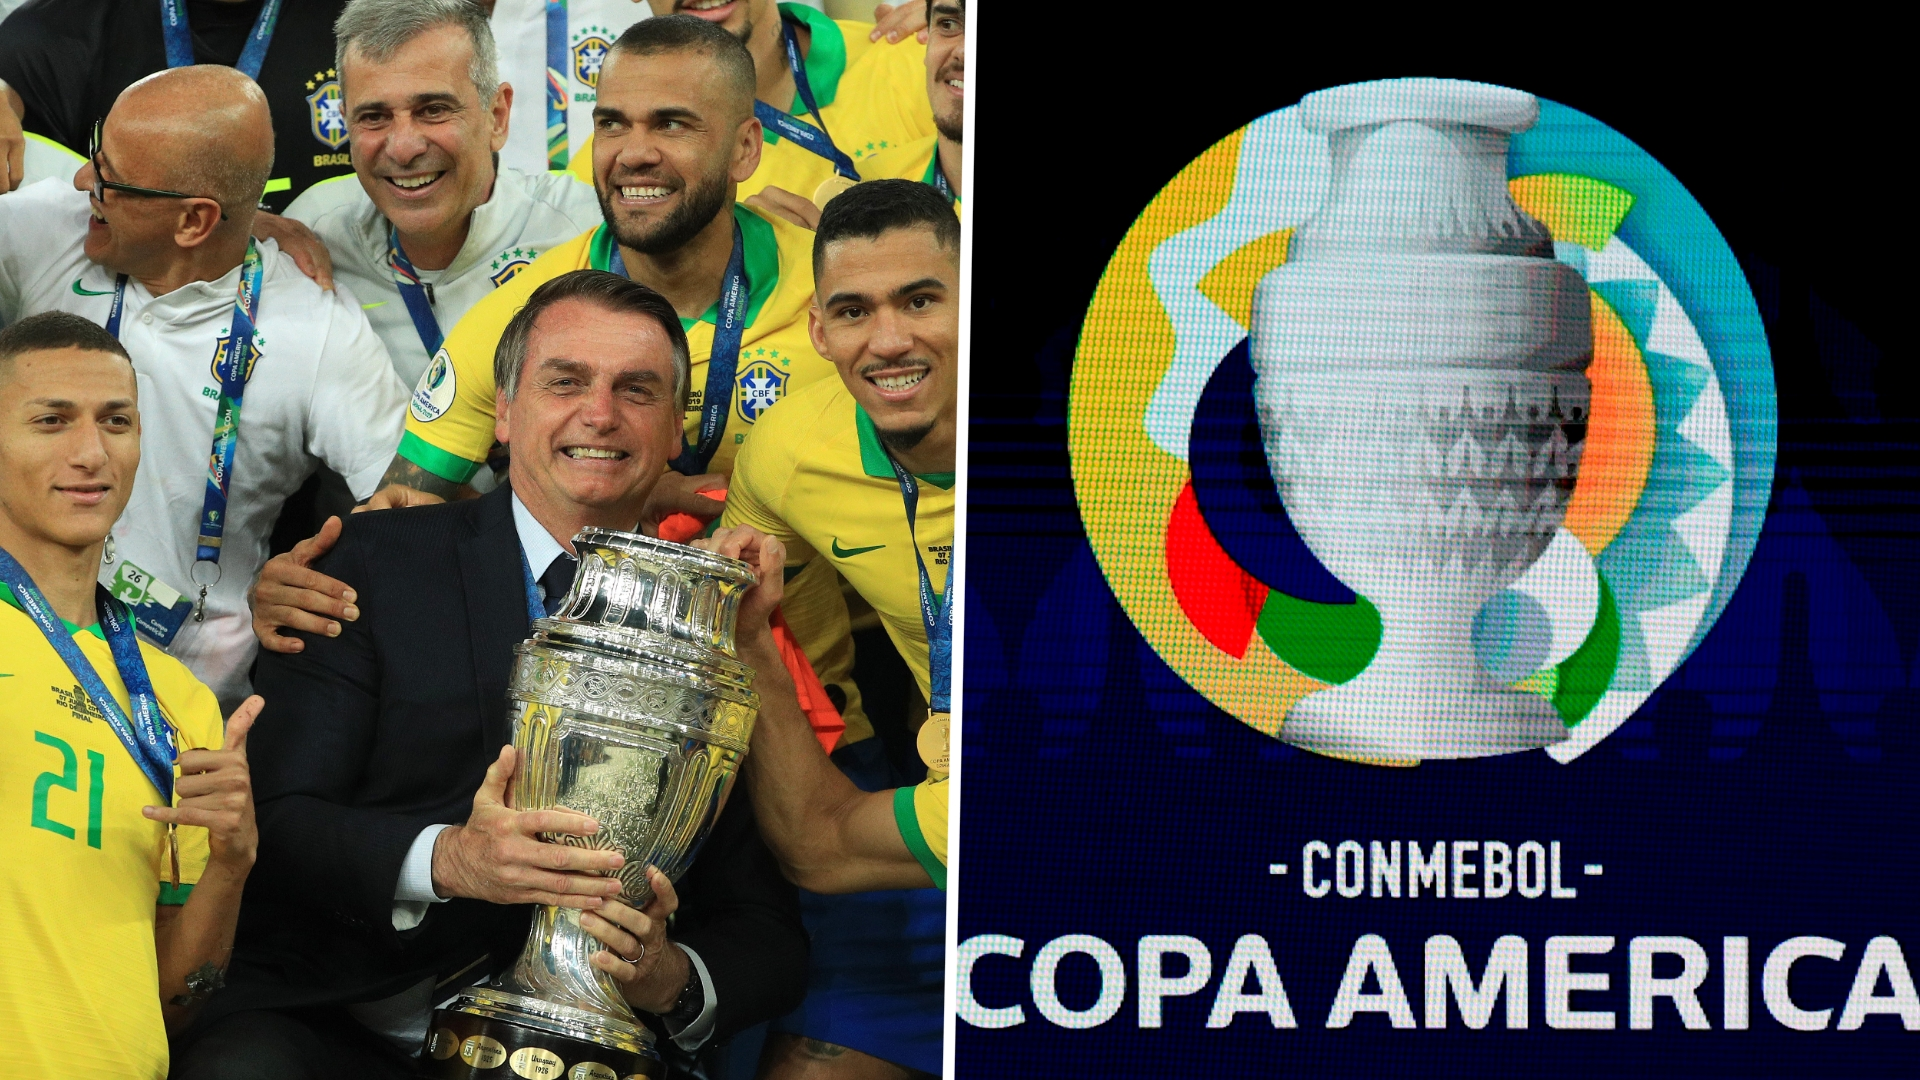 Copa America 2021: Why Brazil was chosen to host & which stadiums will games be played in?